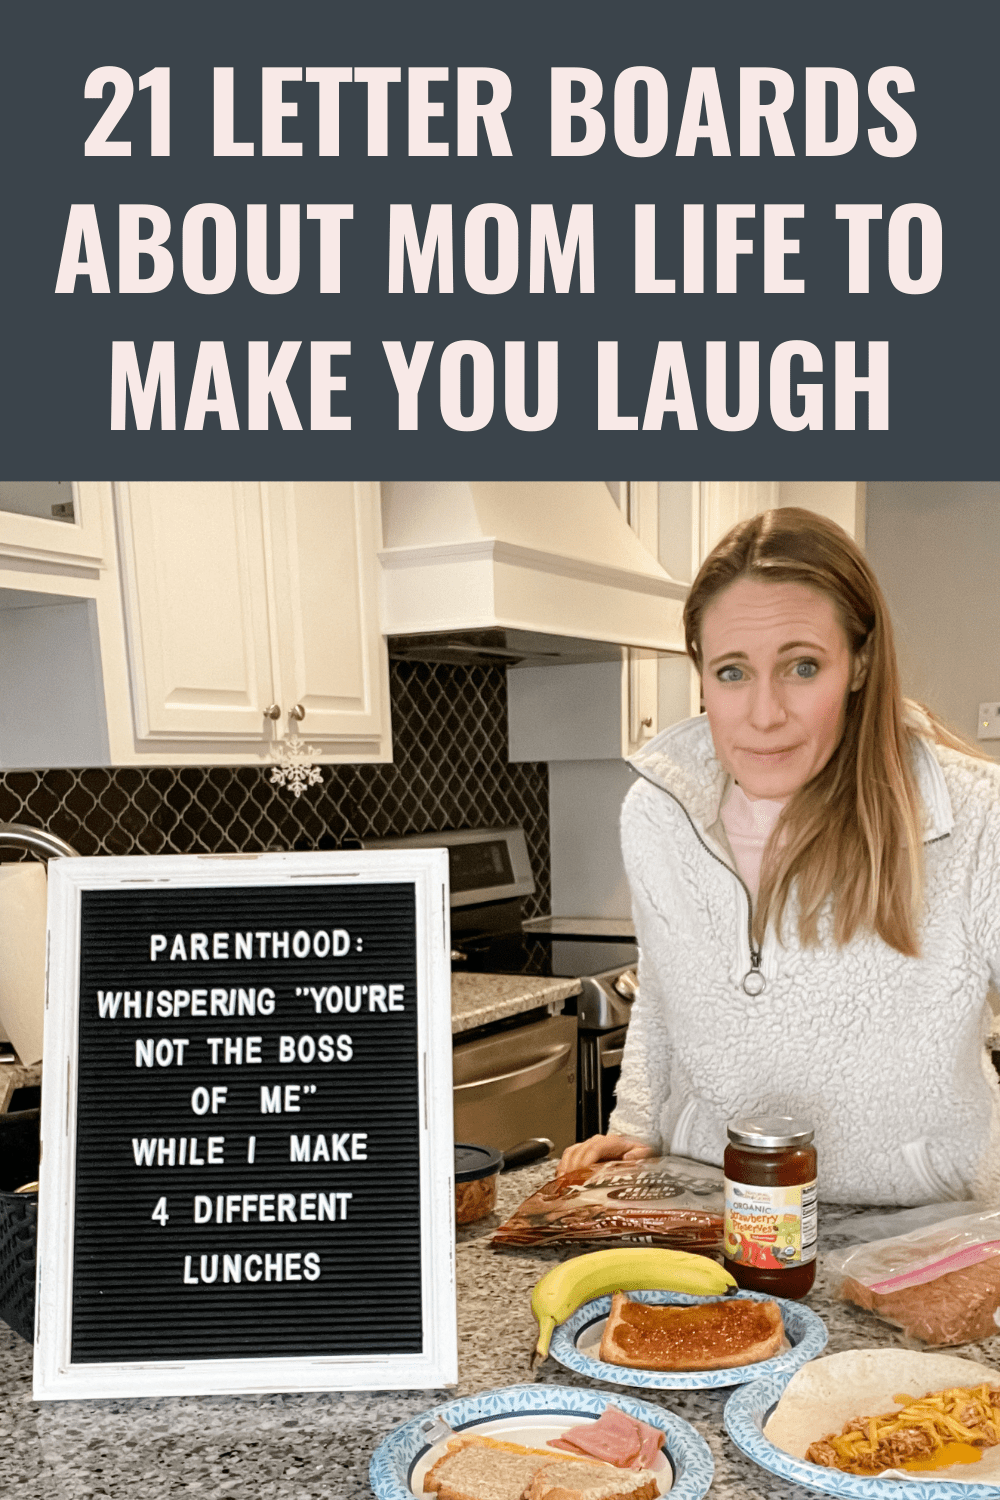 21 Funny Letter Board Quotes Perfect for Your Mom Life